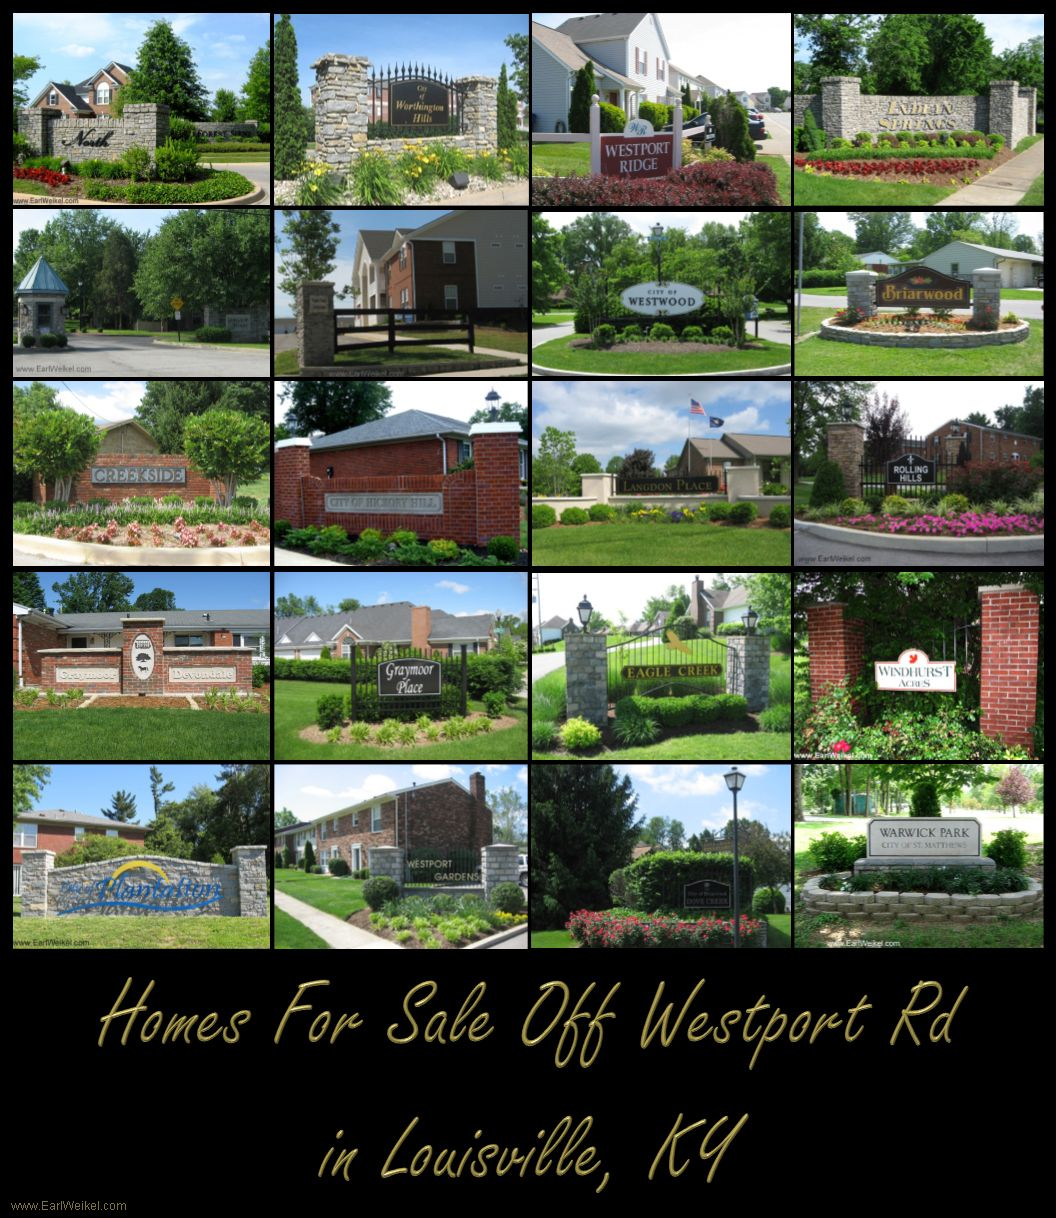 Houses, condos or patio homes for sale off Westport Rd Louisville KY http:/ - Houses, Condos Or Patio Homes For Sale Off Westport Rd Louisville KY